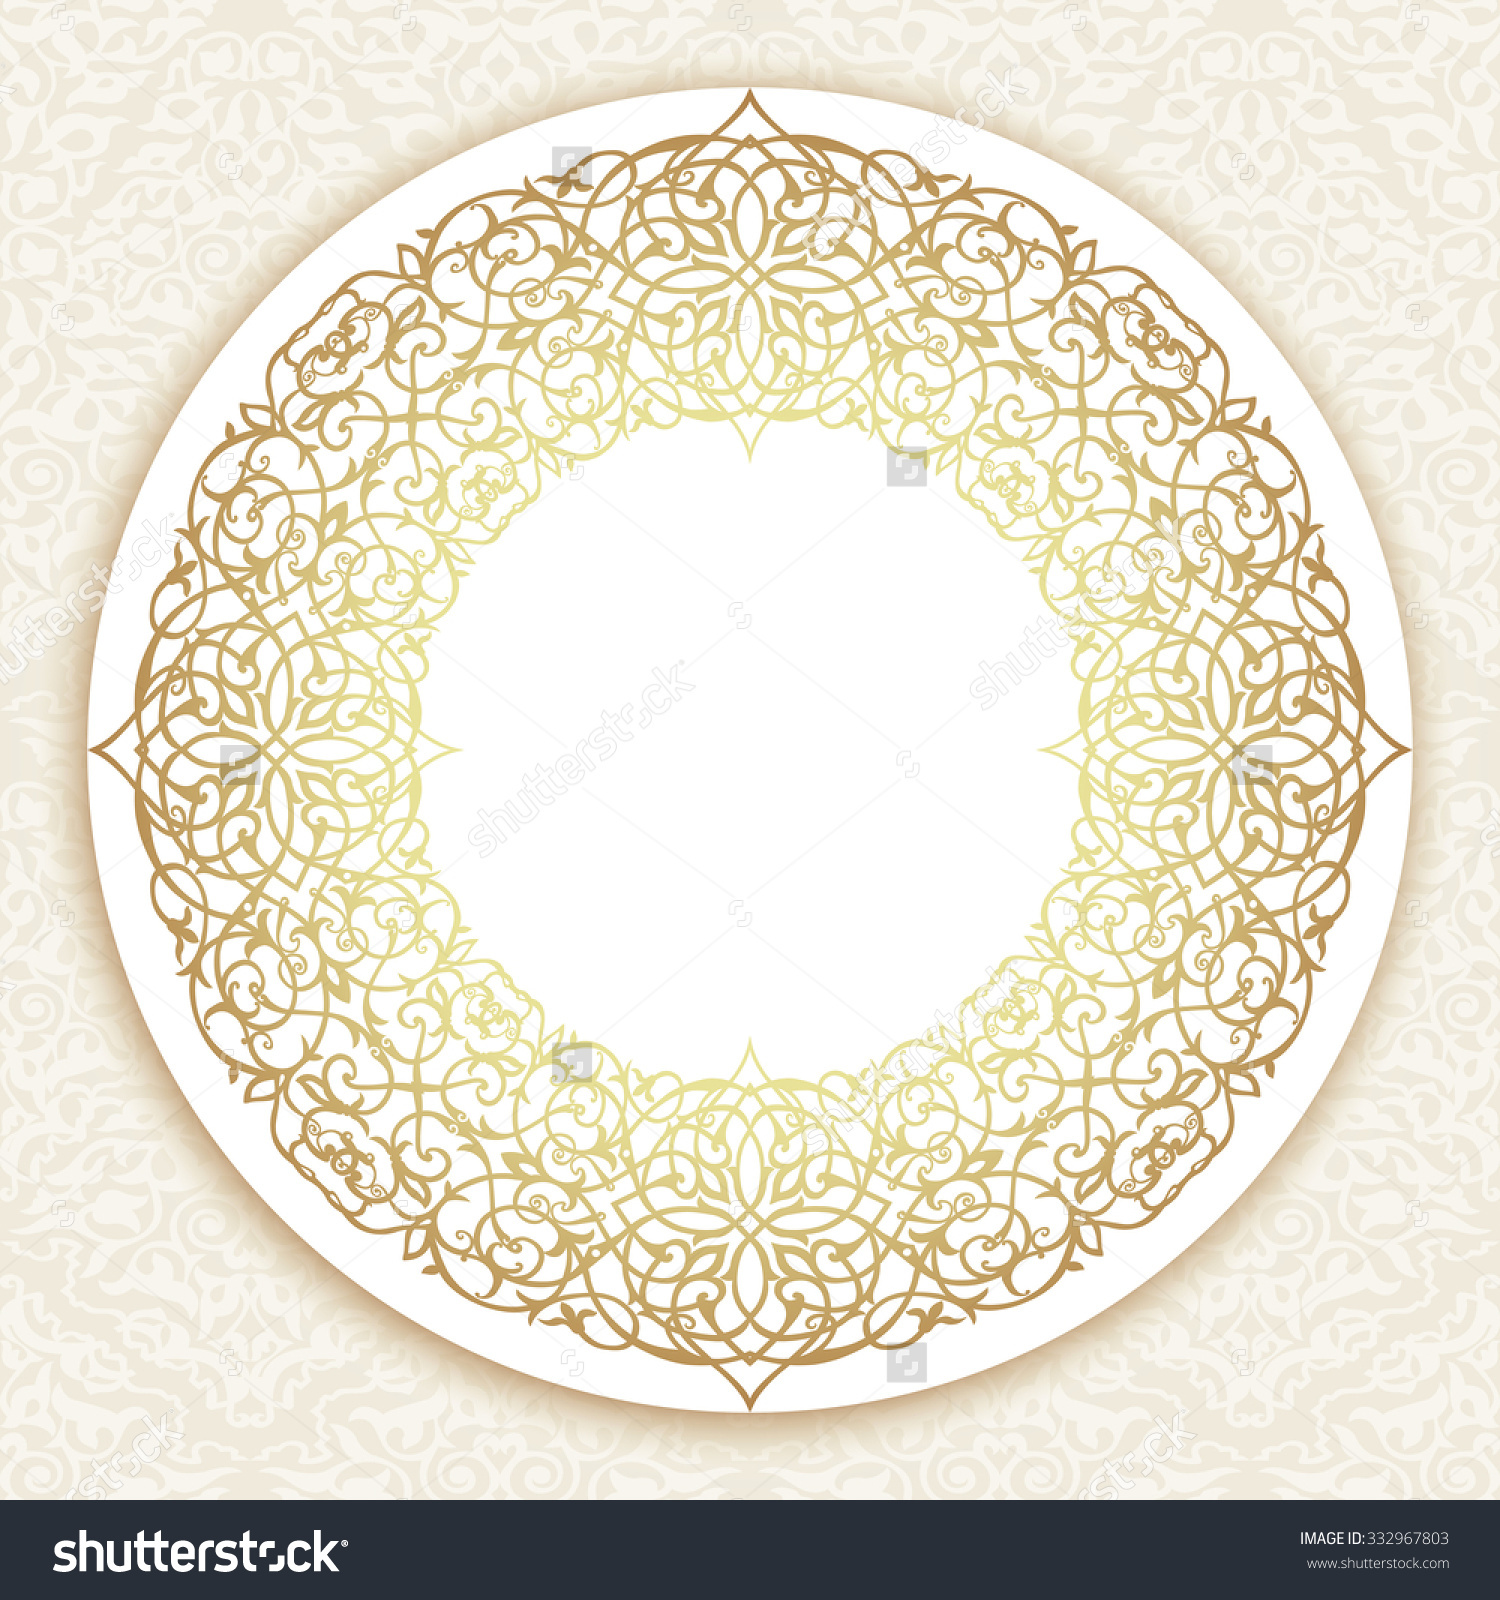 Gold Round Border Damask Motif Ornamental Stock Vector 332967803.